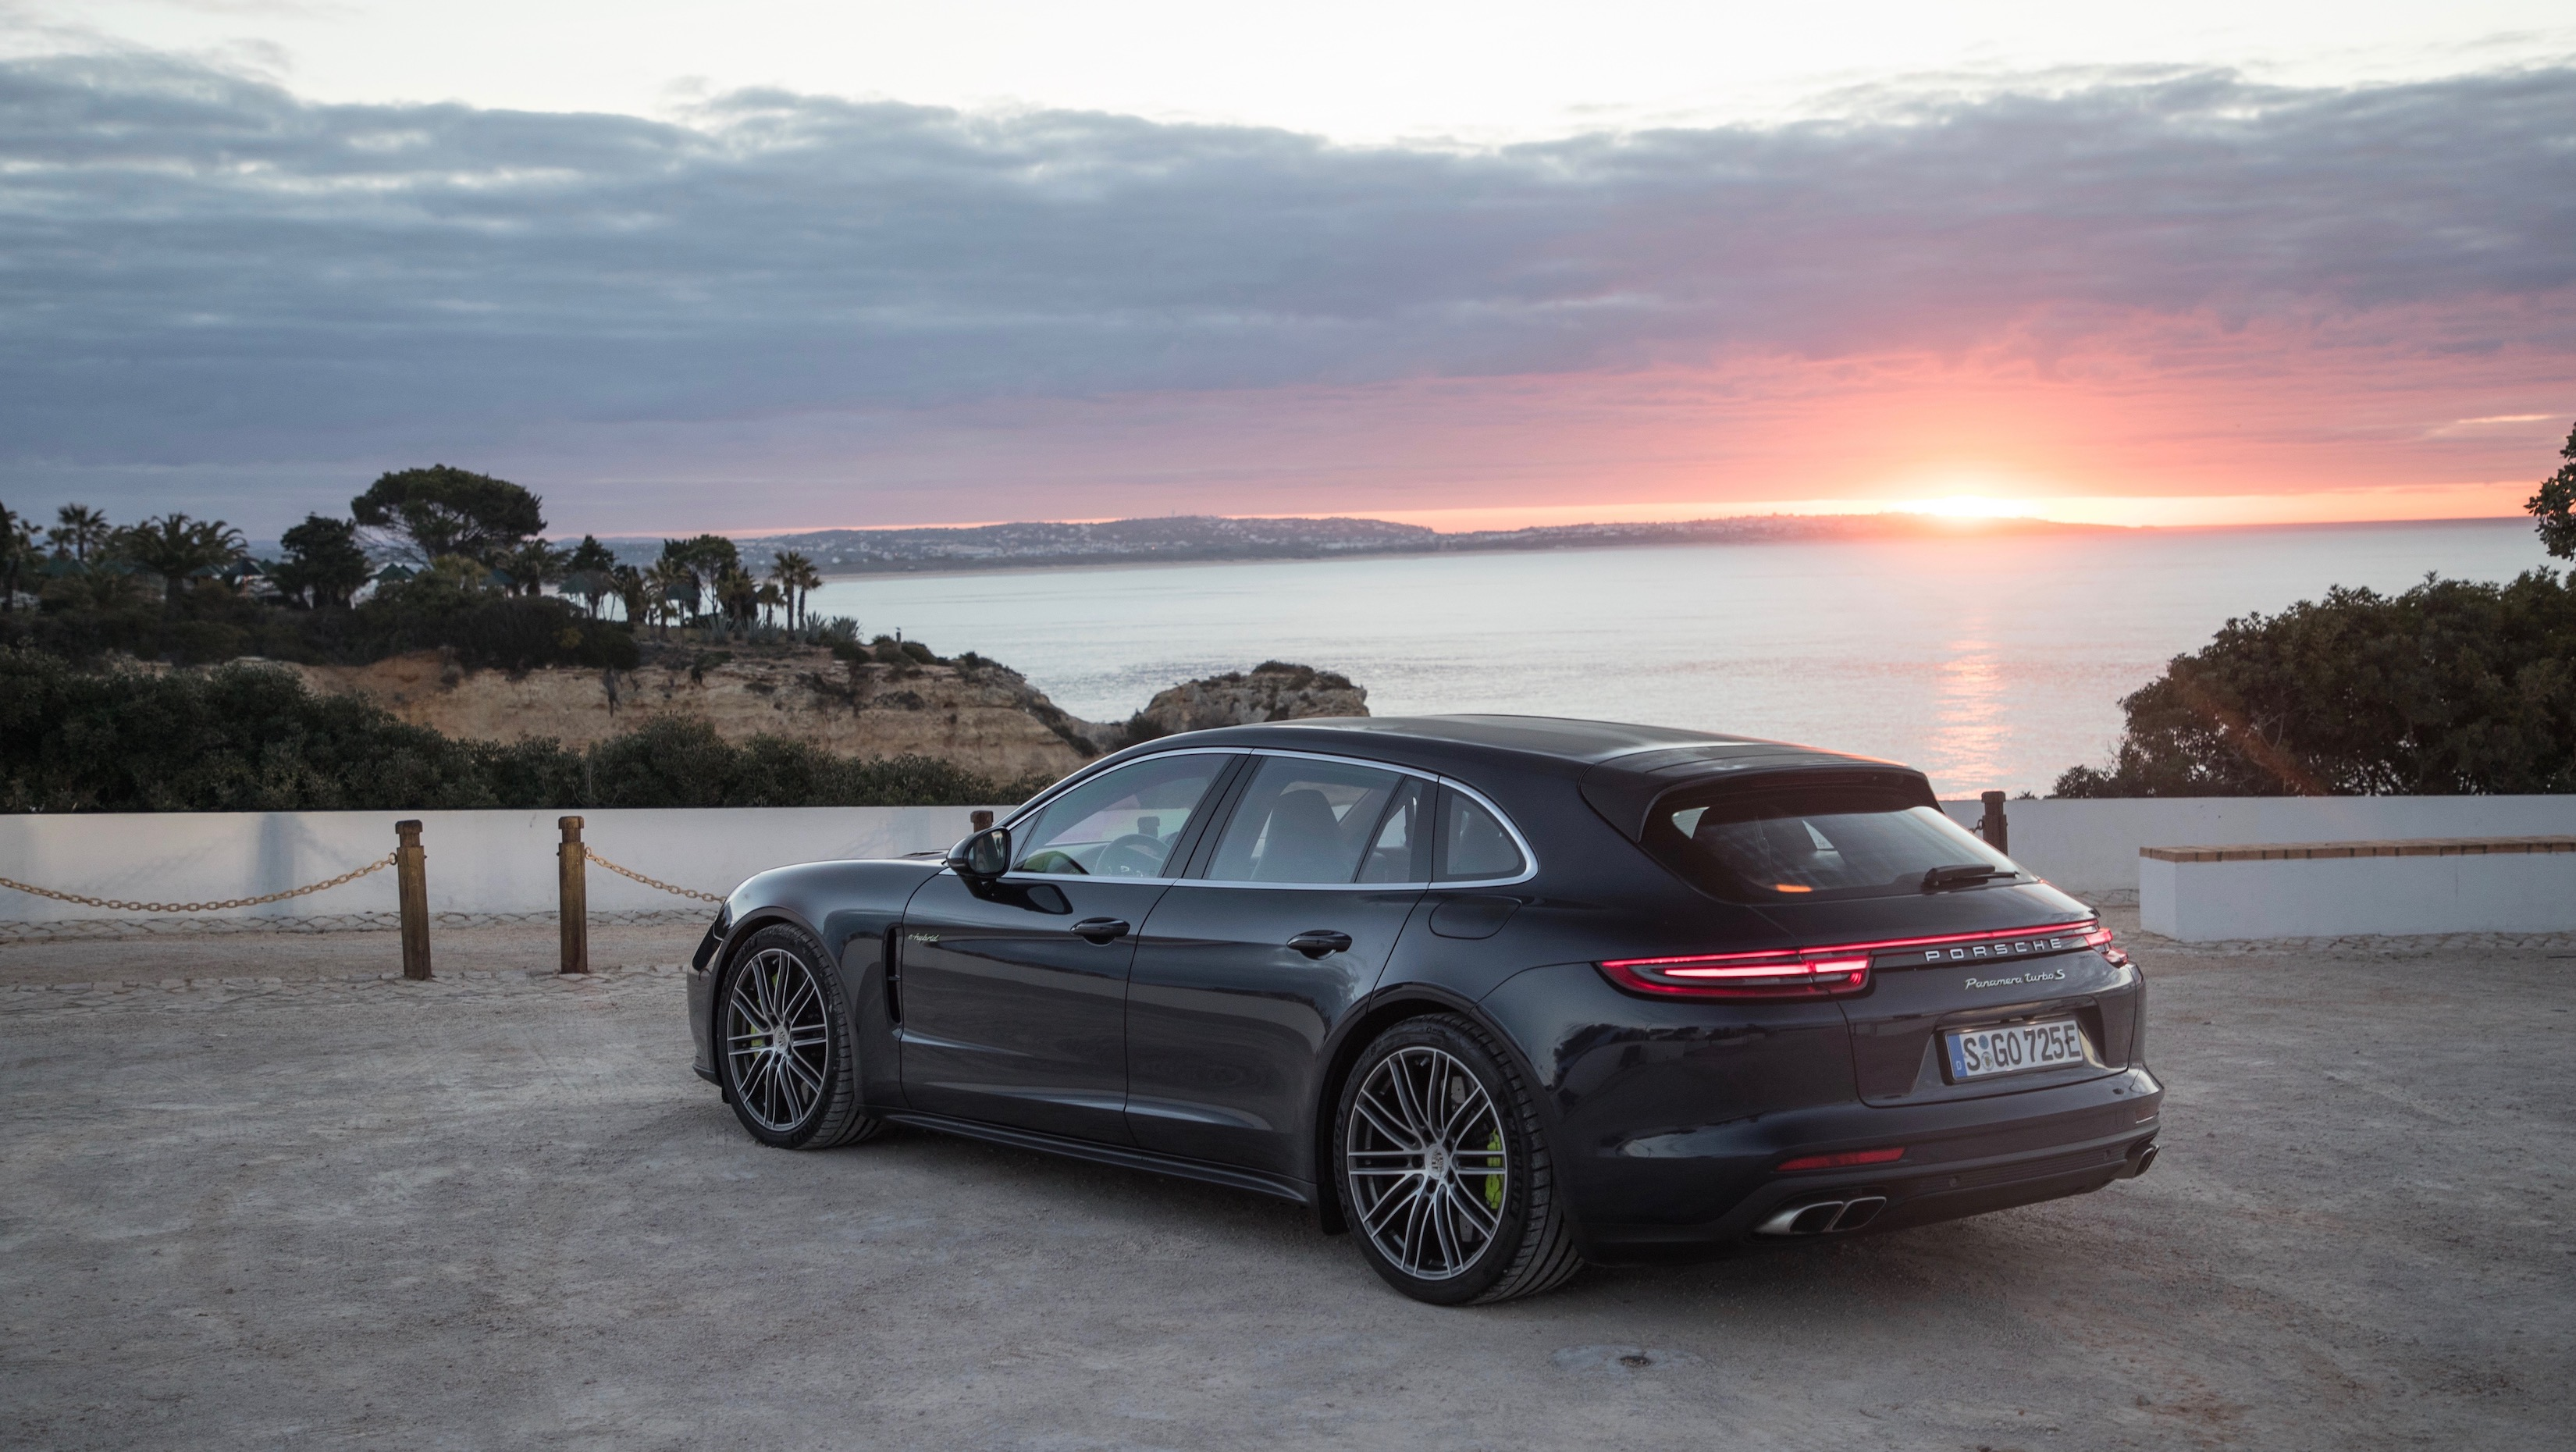 The Panamera Sport Turismo is available with a variety of engine choices